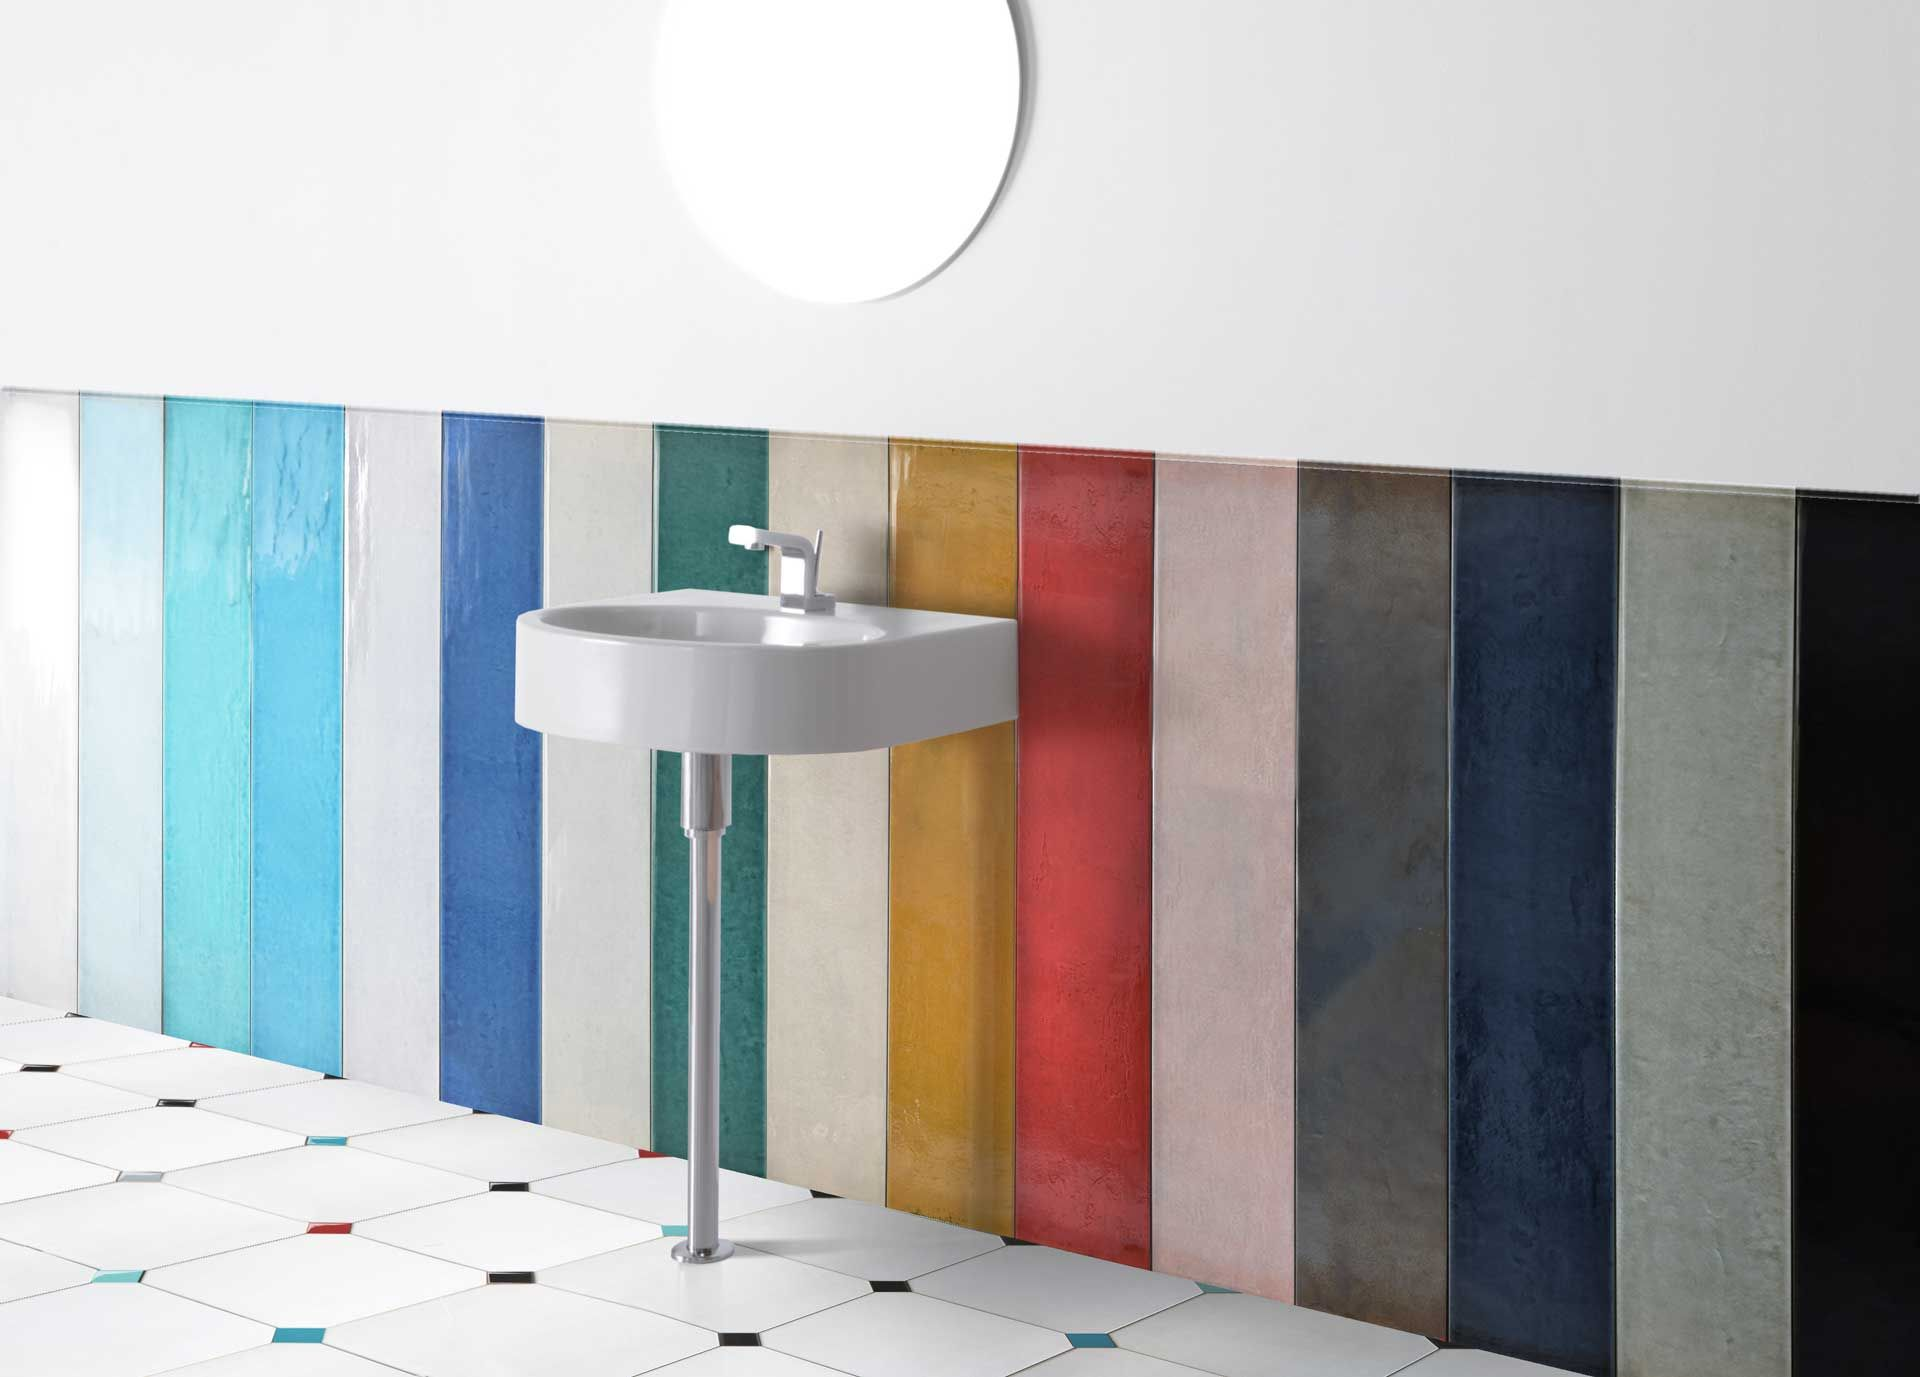 """STICK collection represents a milestone for the technological and artistic research of Ceramica Senio. The crackle glazes are applied on a big sized – 20×120 cm – porcelain tile with surprising aesthetic and ceramic effects. The surface is available in 15 different glossy colours with """"wet"""" effect and opaque metal. The collection is enriched by sub-sizes, mosaics and special pieces.  #stick #ceramic #madeinitaly #ceramicasenio #colour #ceramiclove #homedecor #bathroom #tiles"""